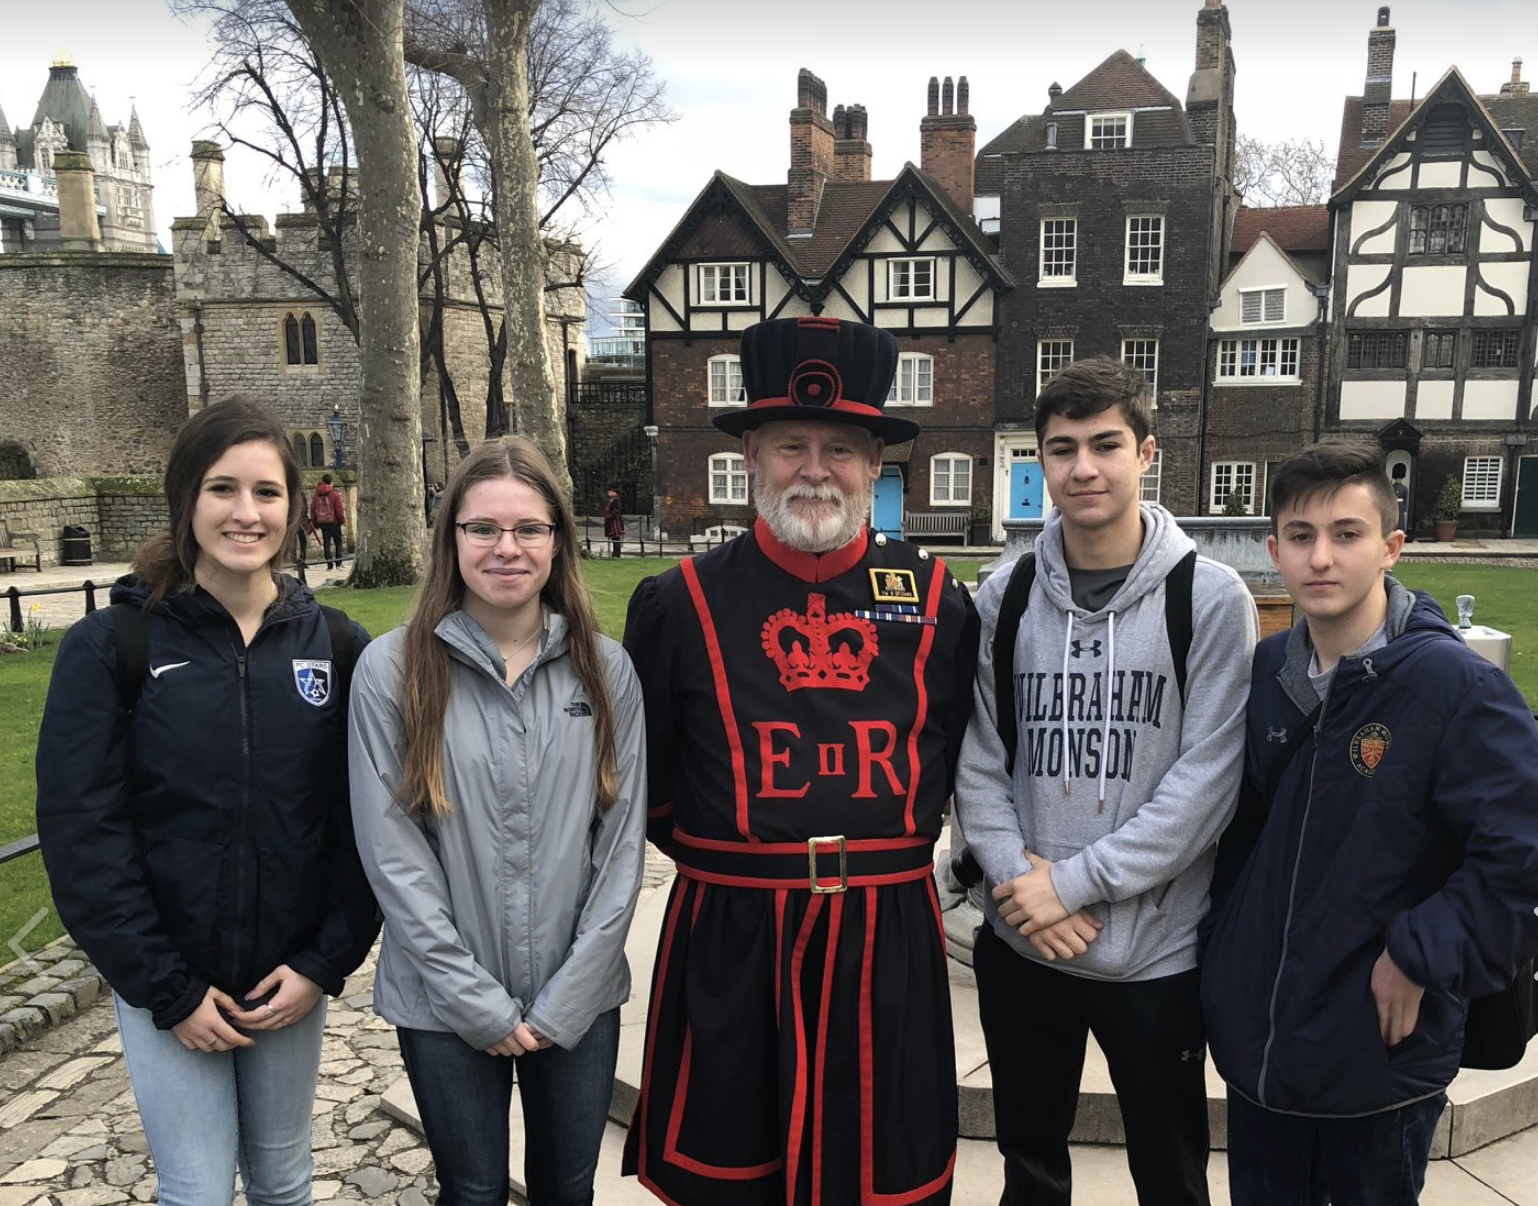 Students in England standing with a Beefeater